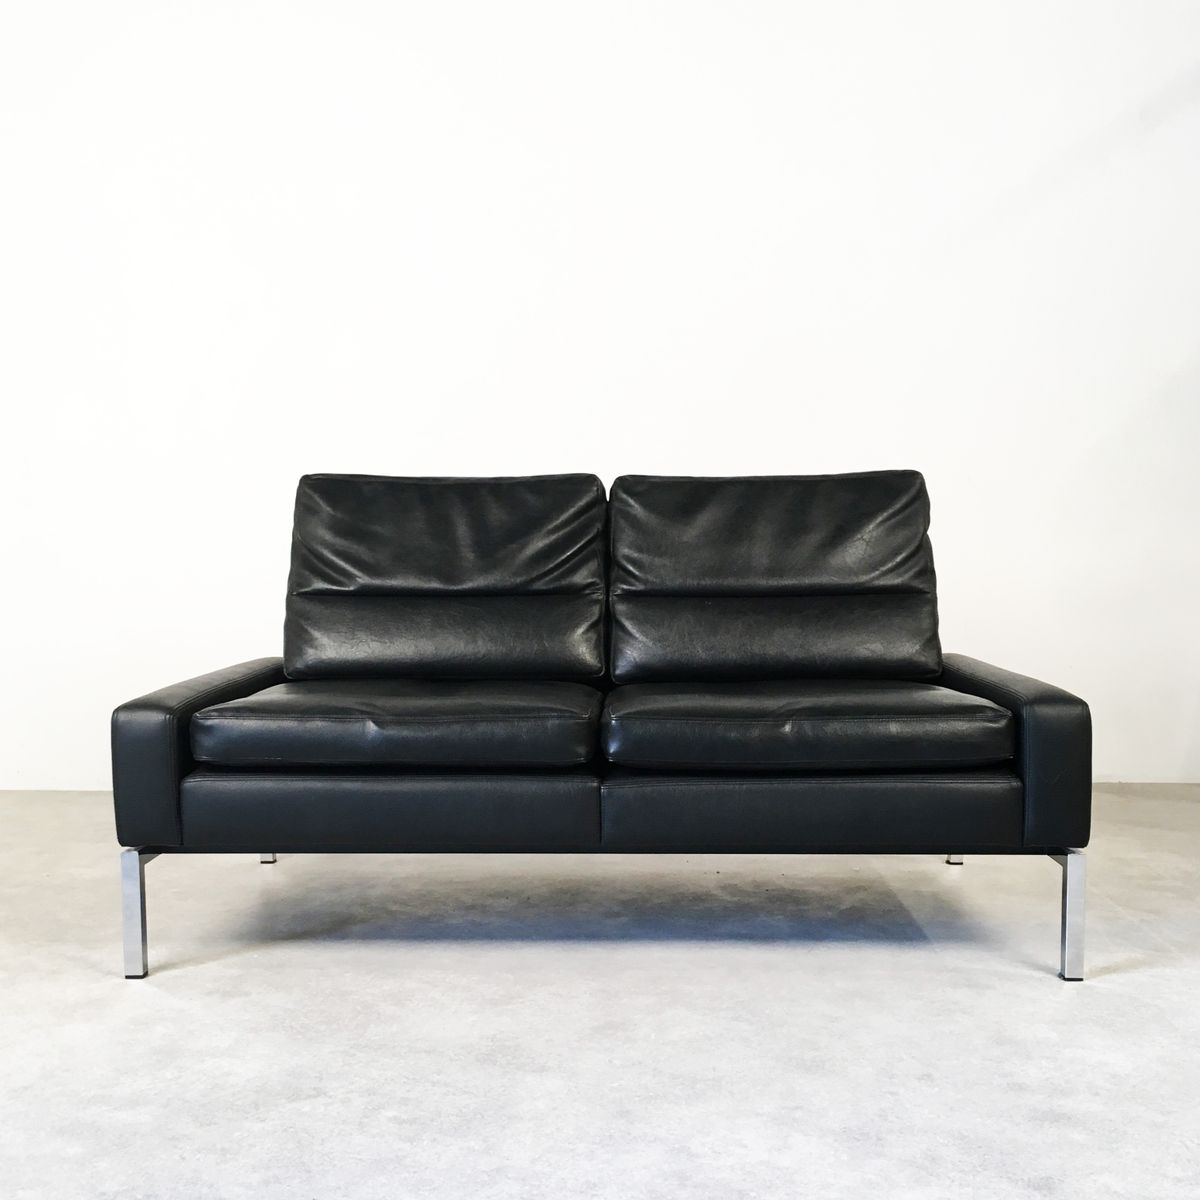 Sofa by hans peter piel for wilkhahn for sale at pamono - Limpiar sofa piel ...